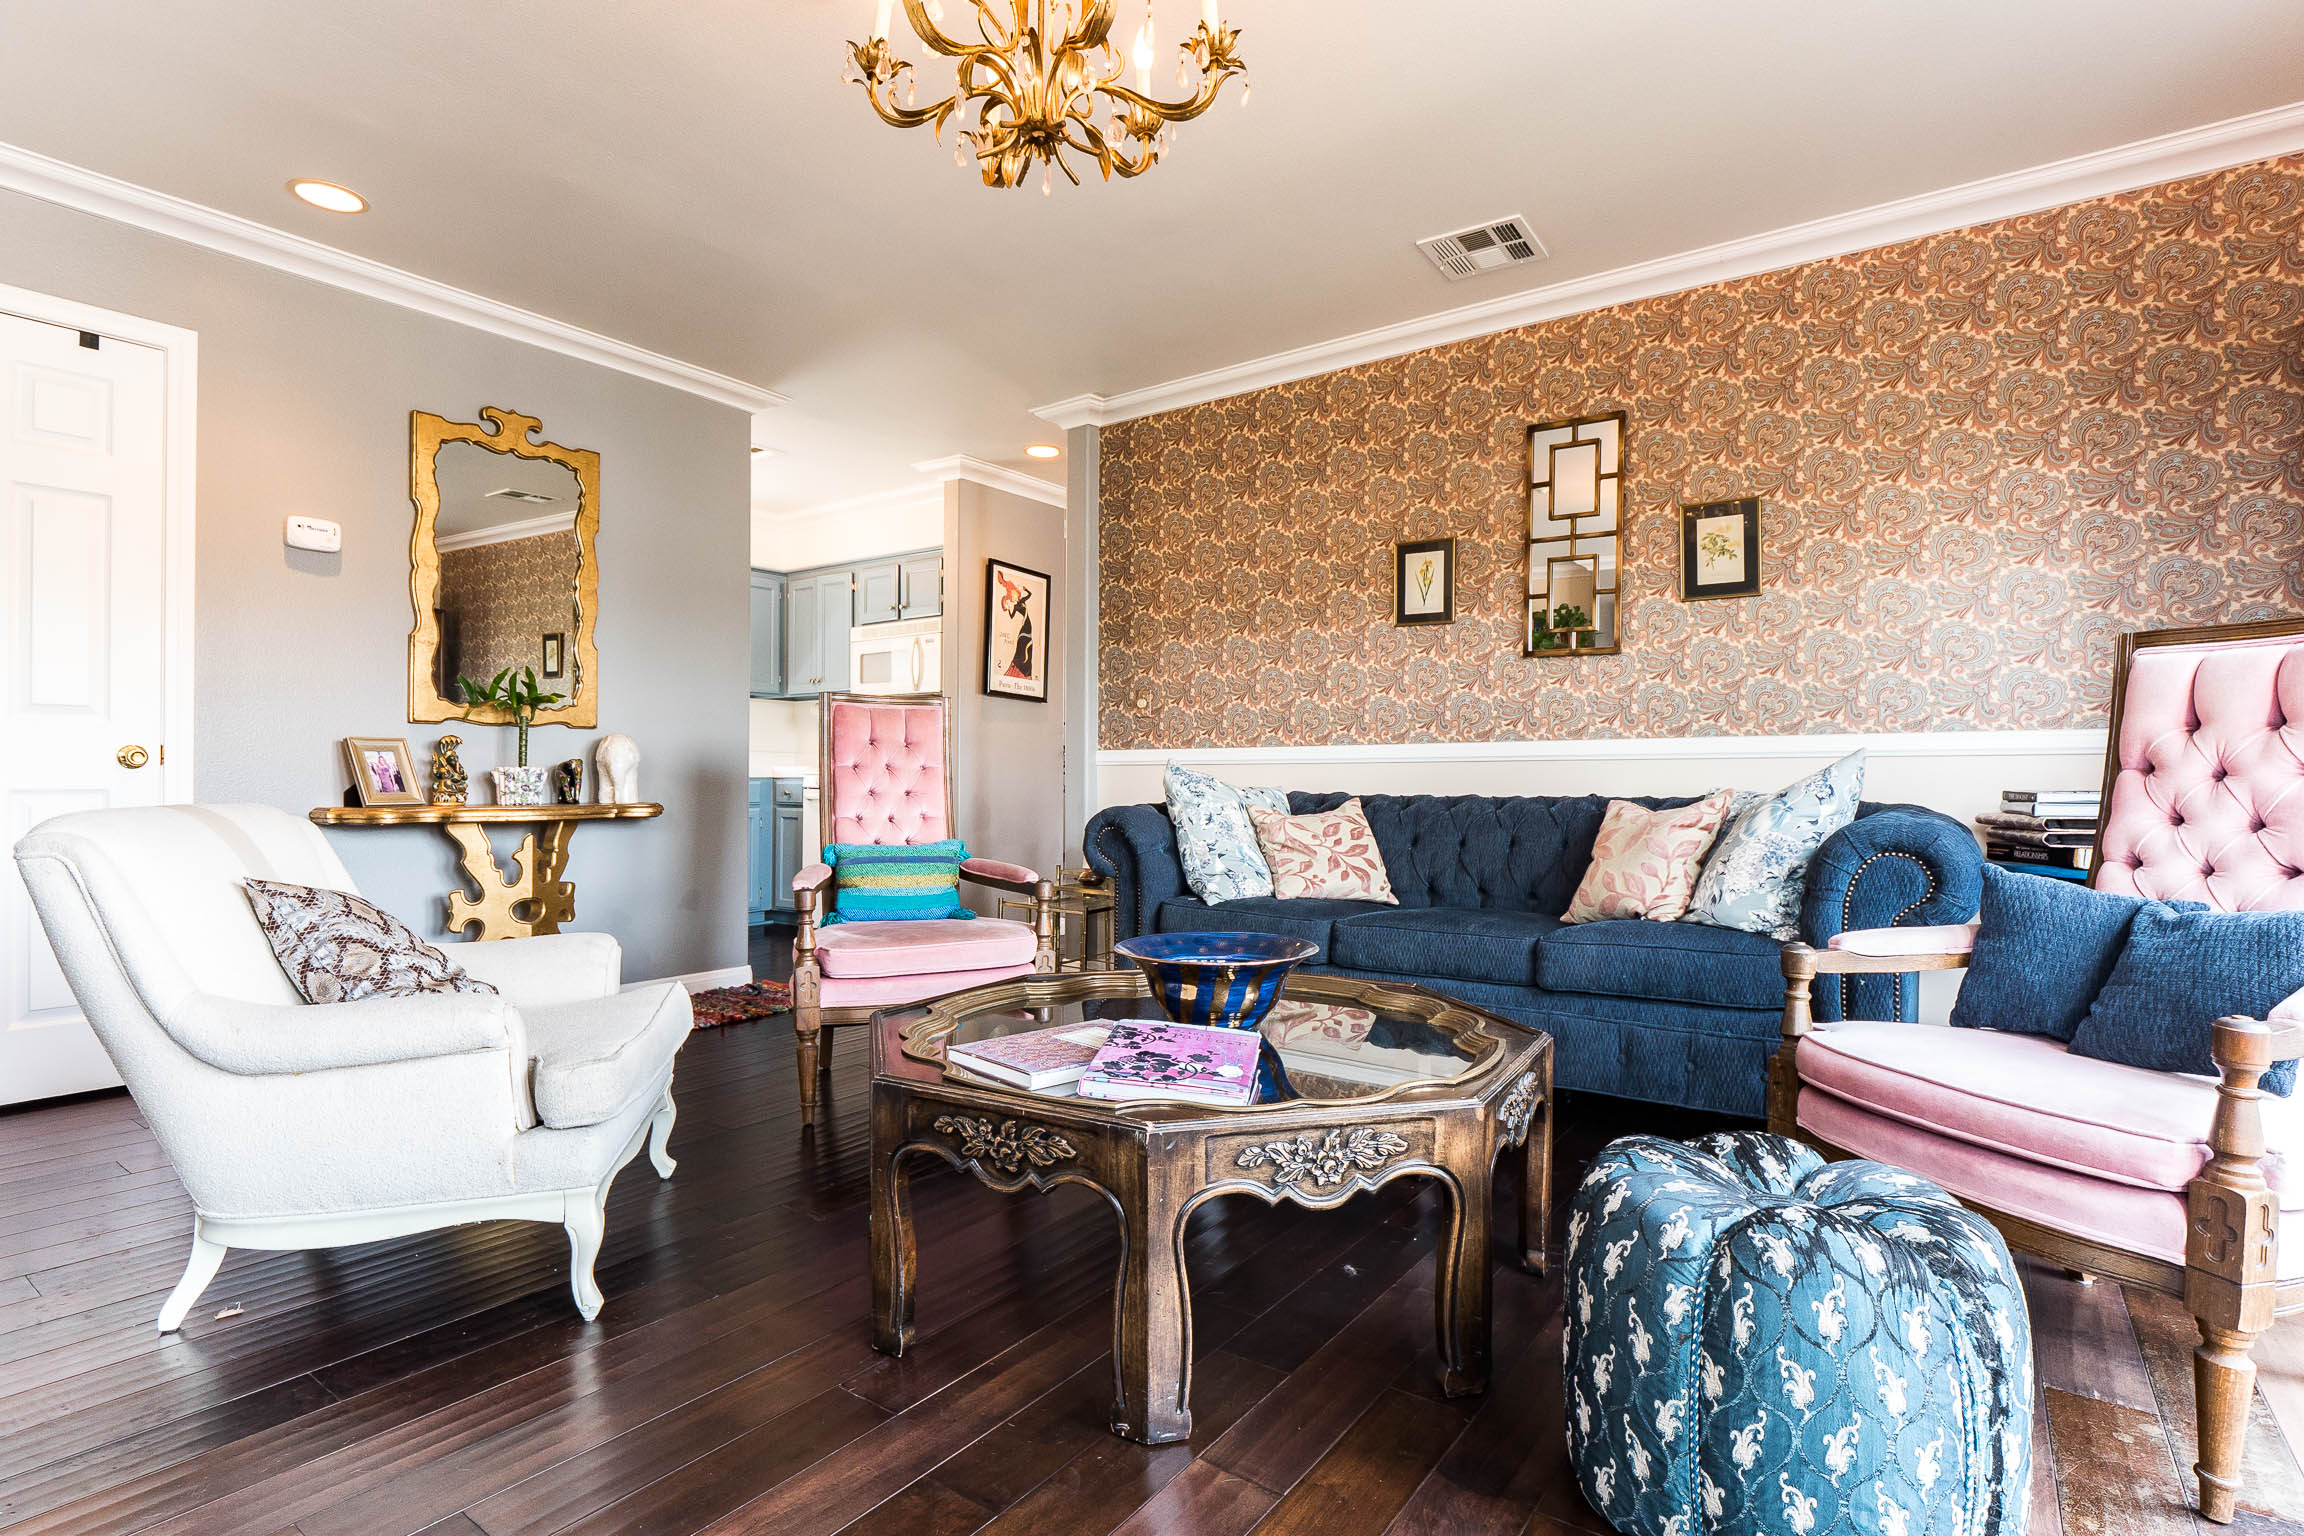 Super Chic Echo Park Town House | Fully Furnished | Incredibly Sweet Design | One Block to Sunset | Near Dodger Stadium